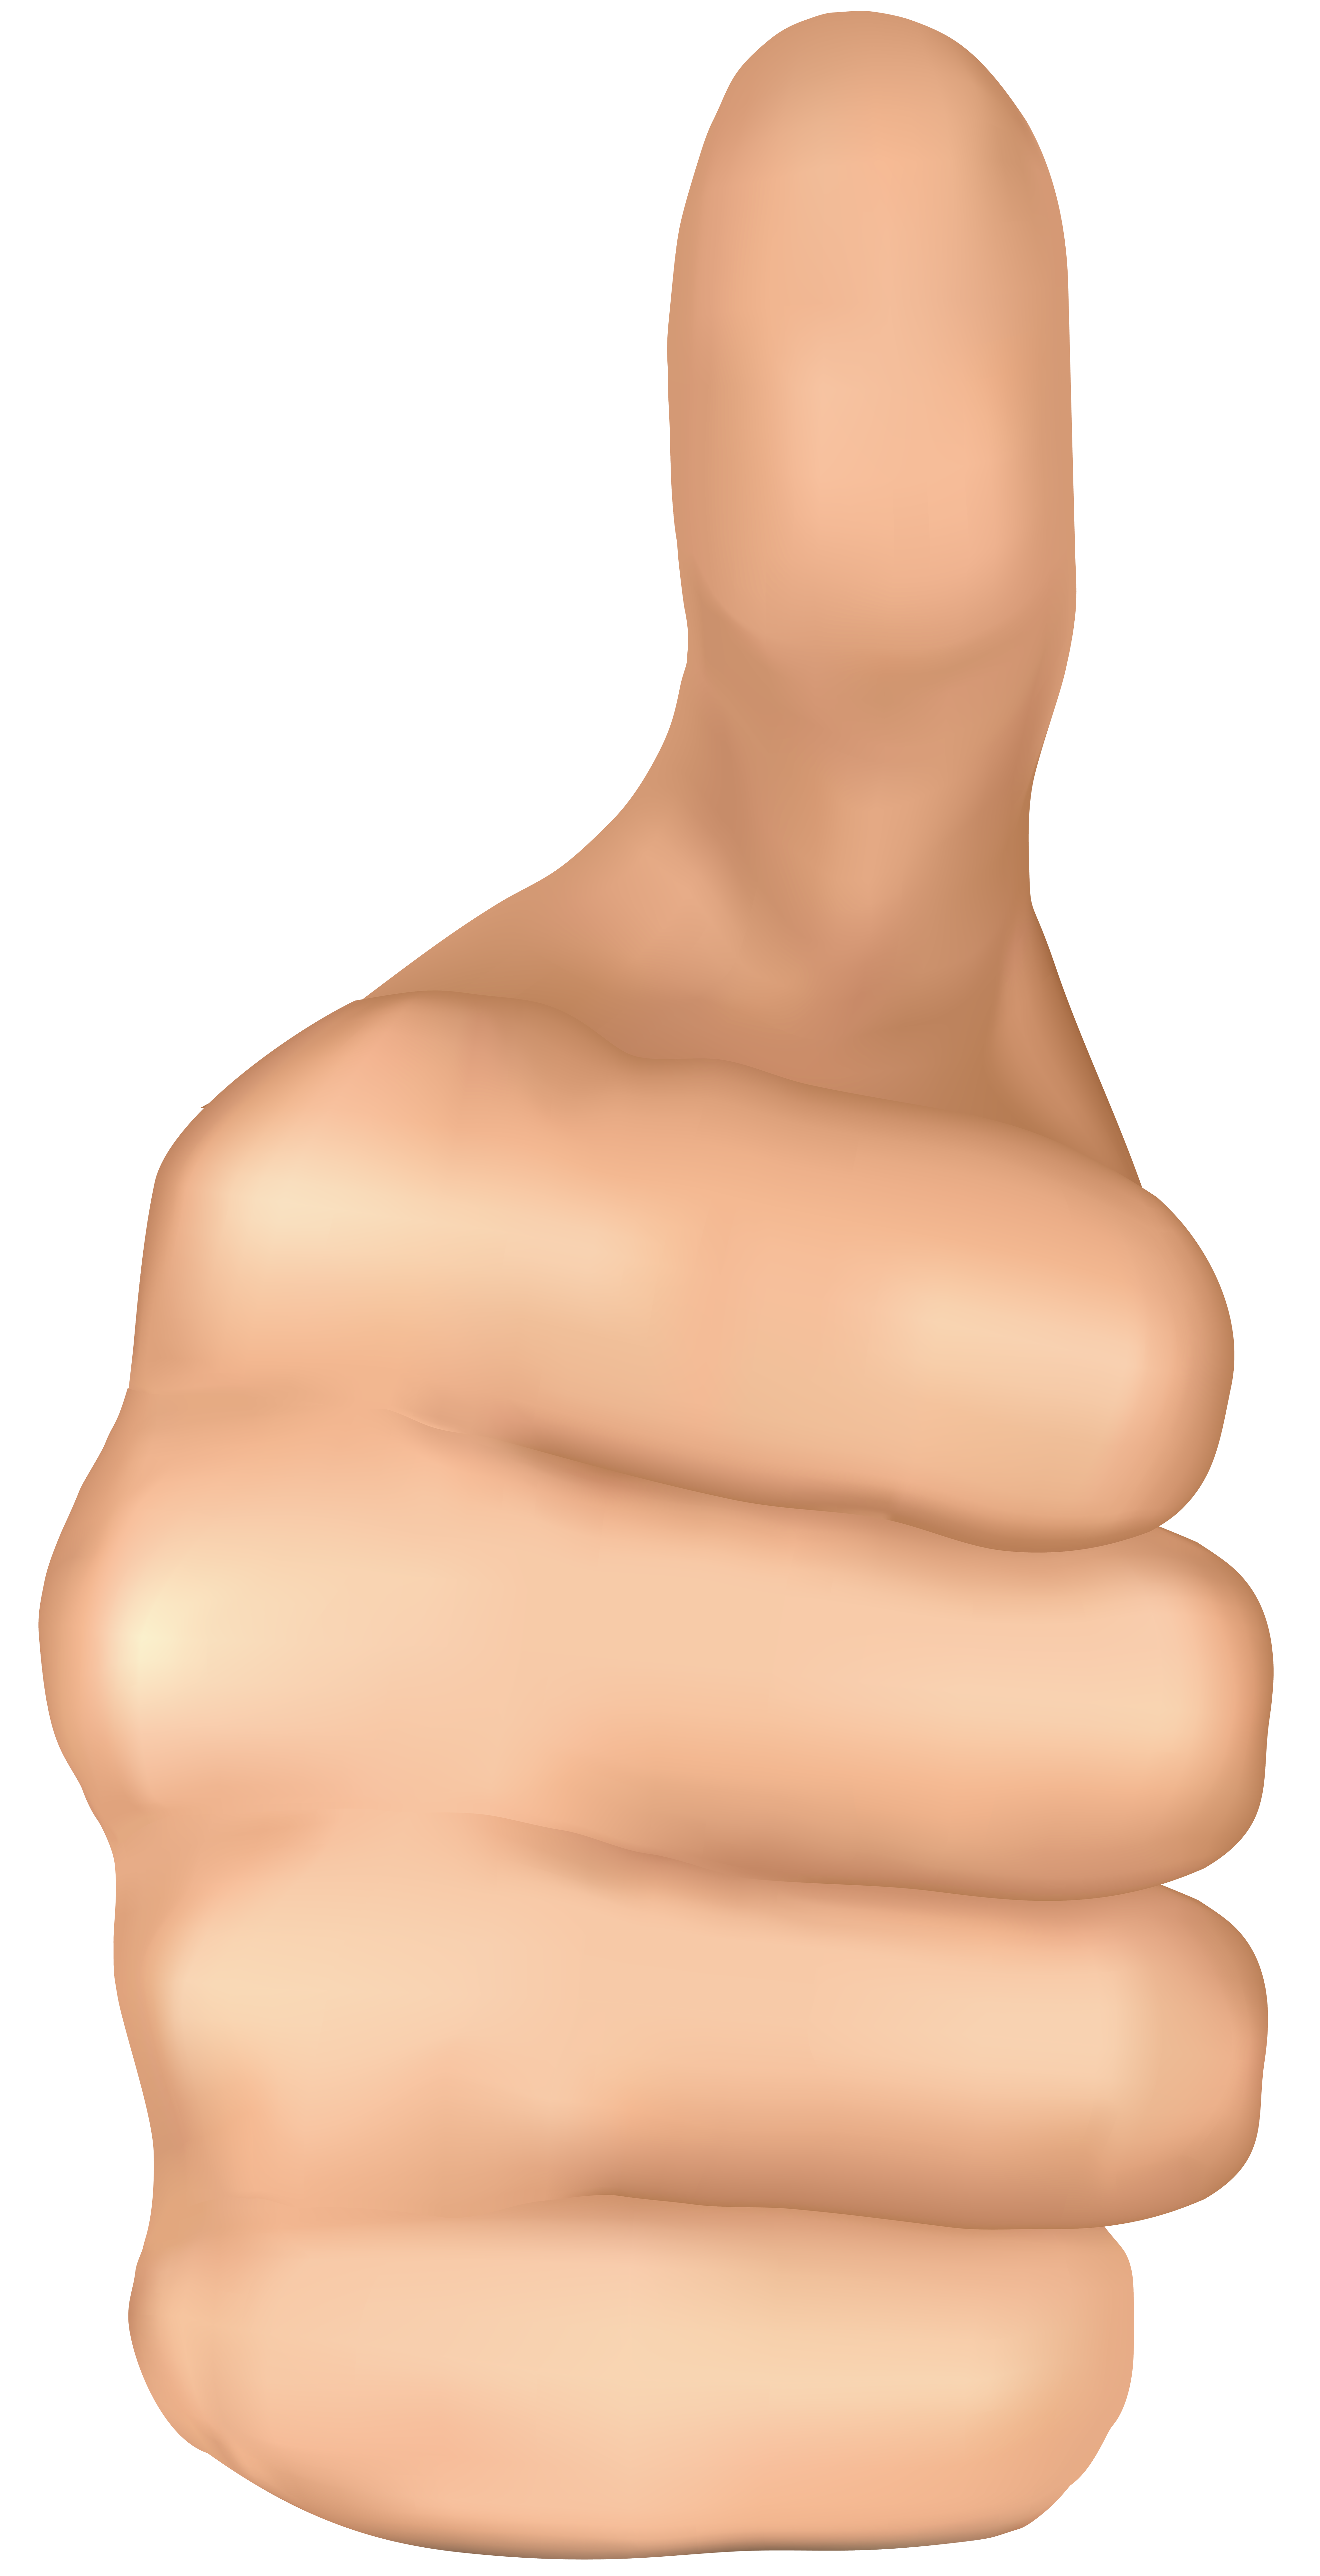 Skin clipart body trunk. Thumbs up hand png